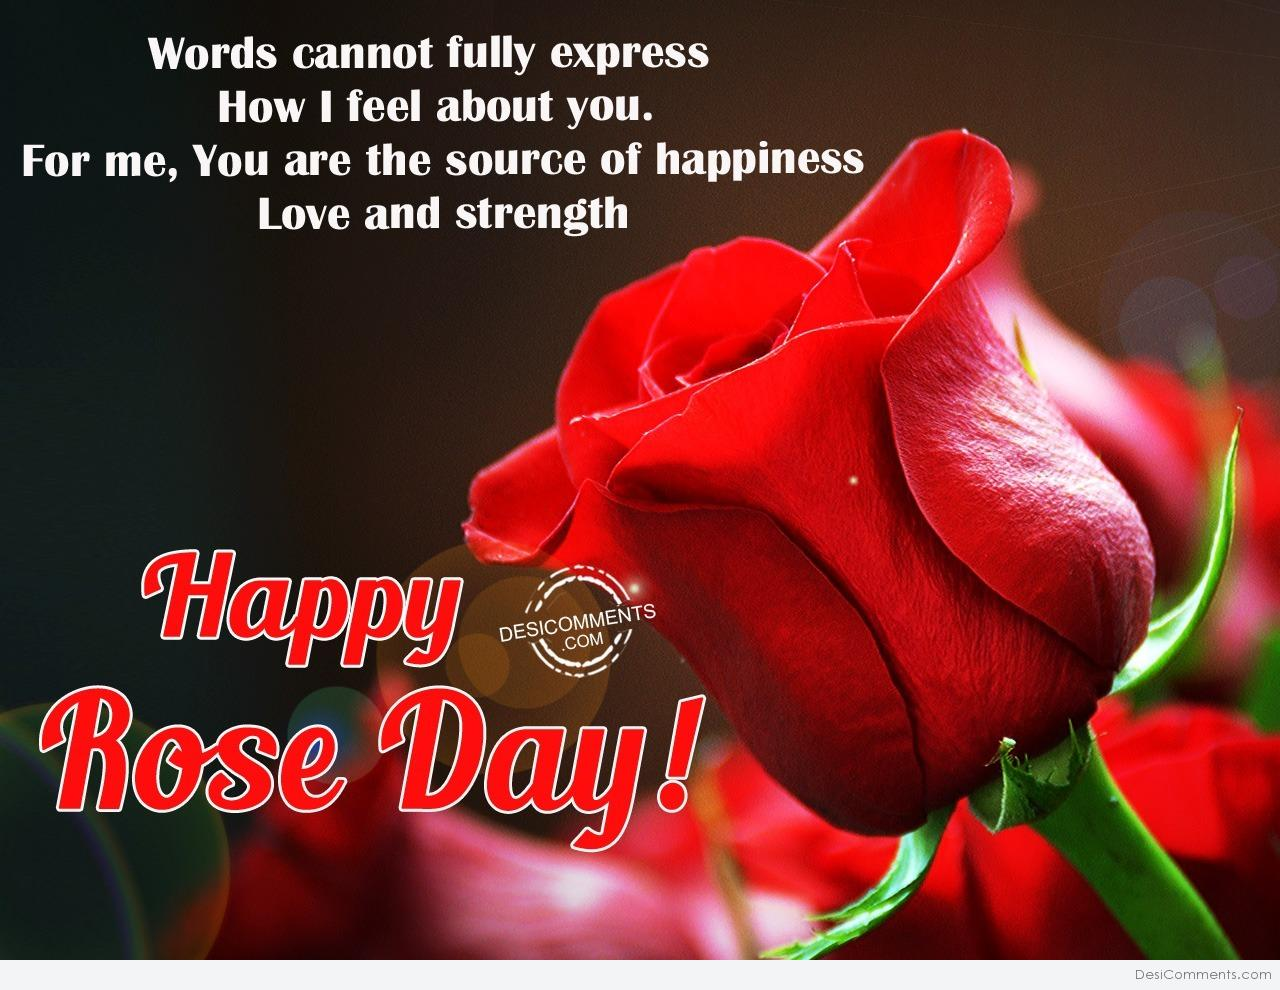 Rose Day Pictures, Image, Graphics